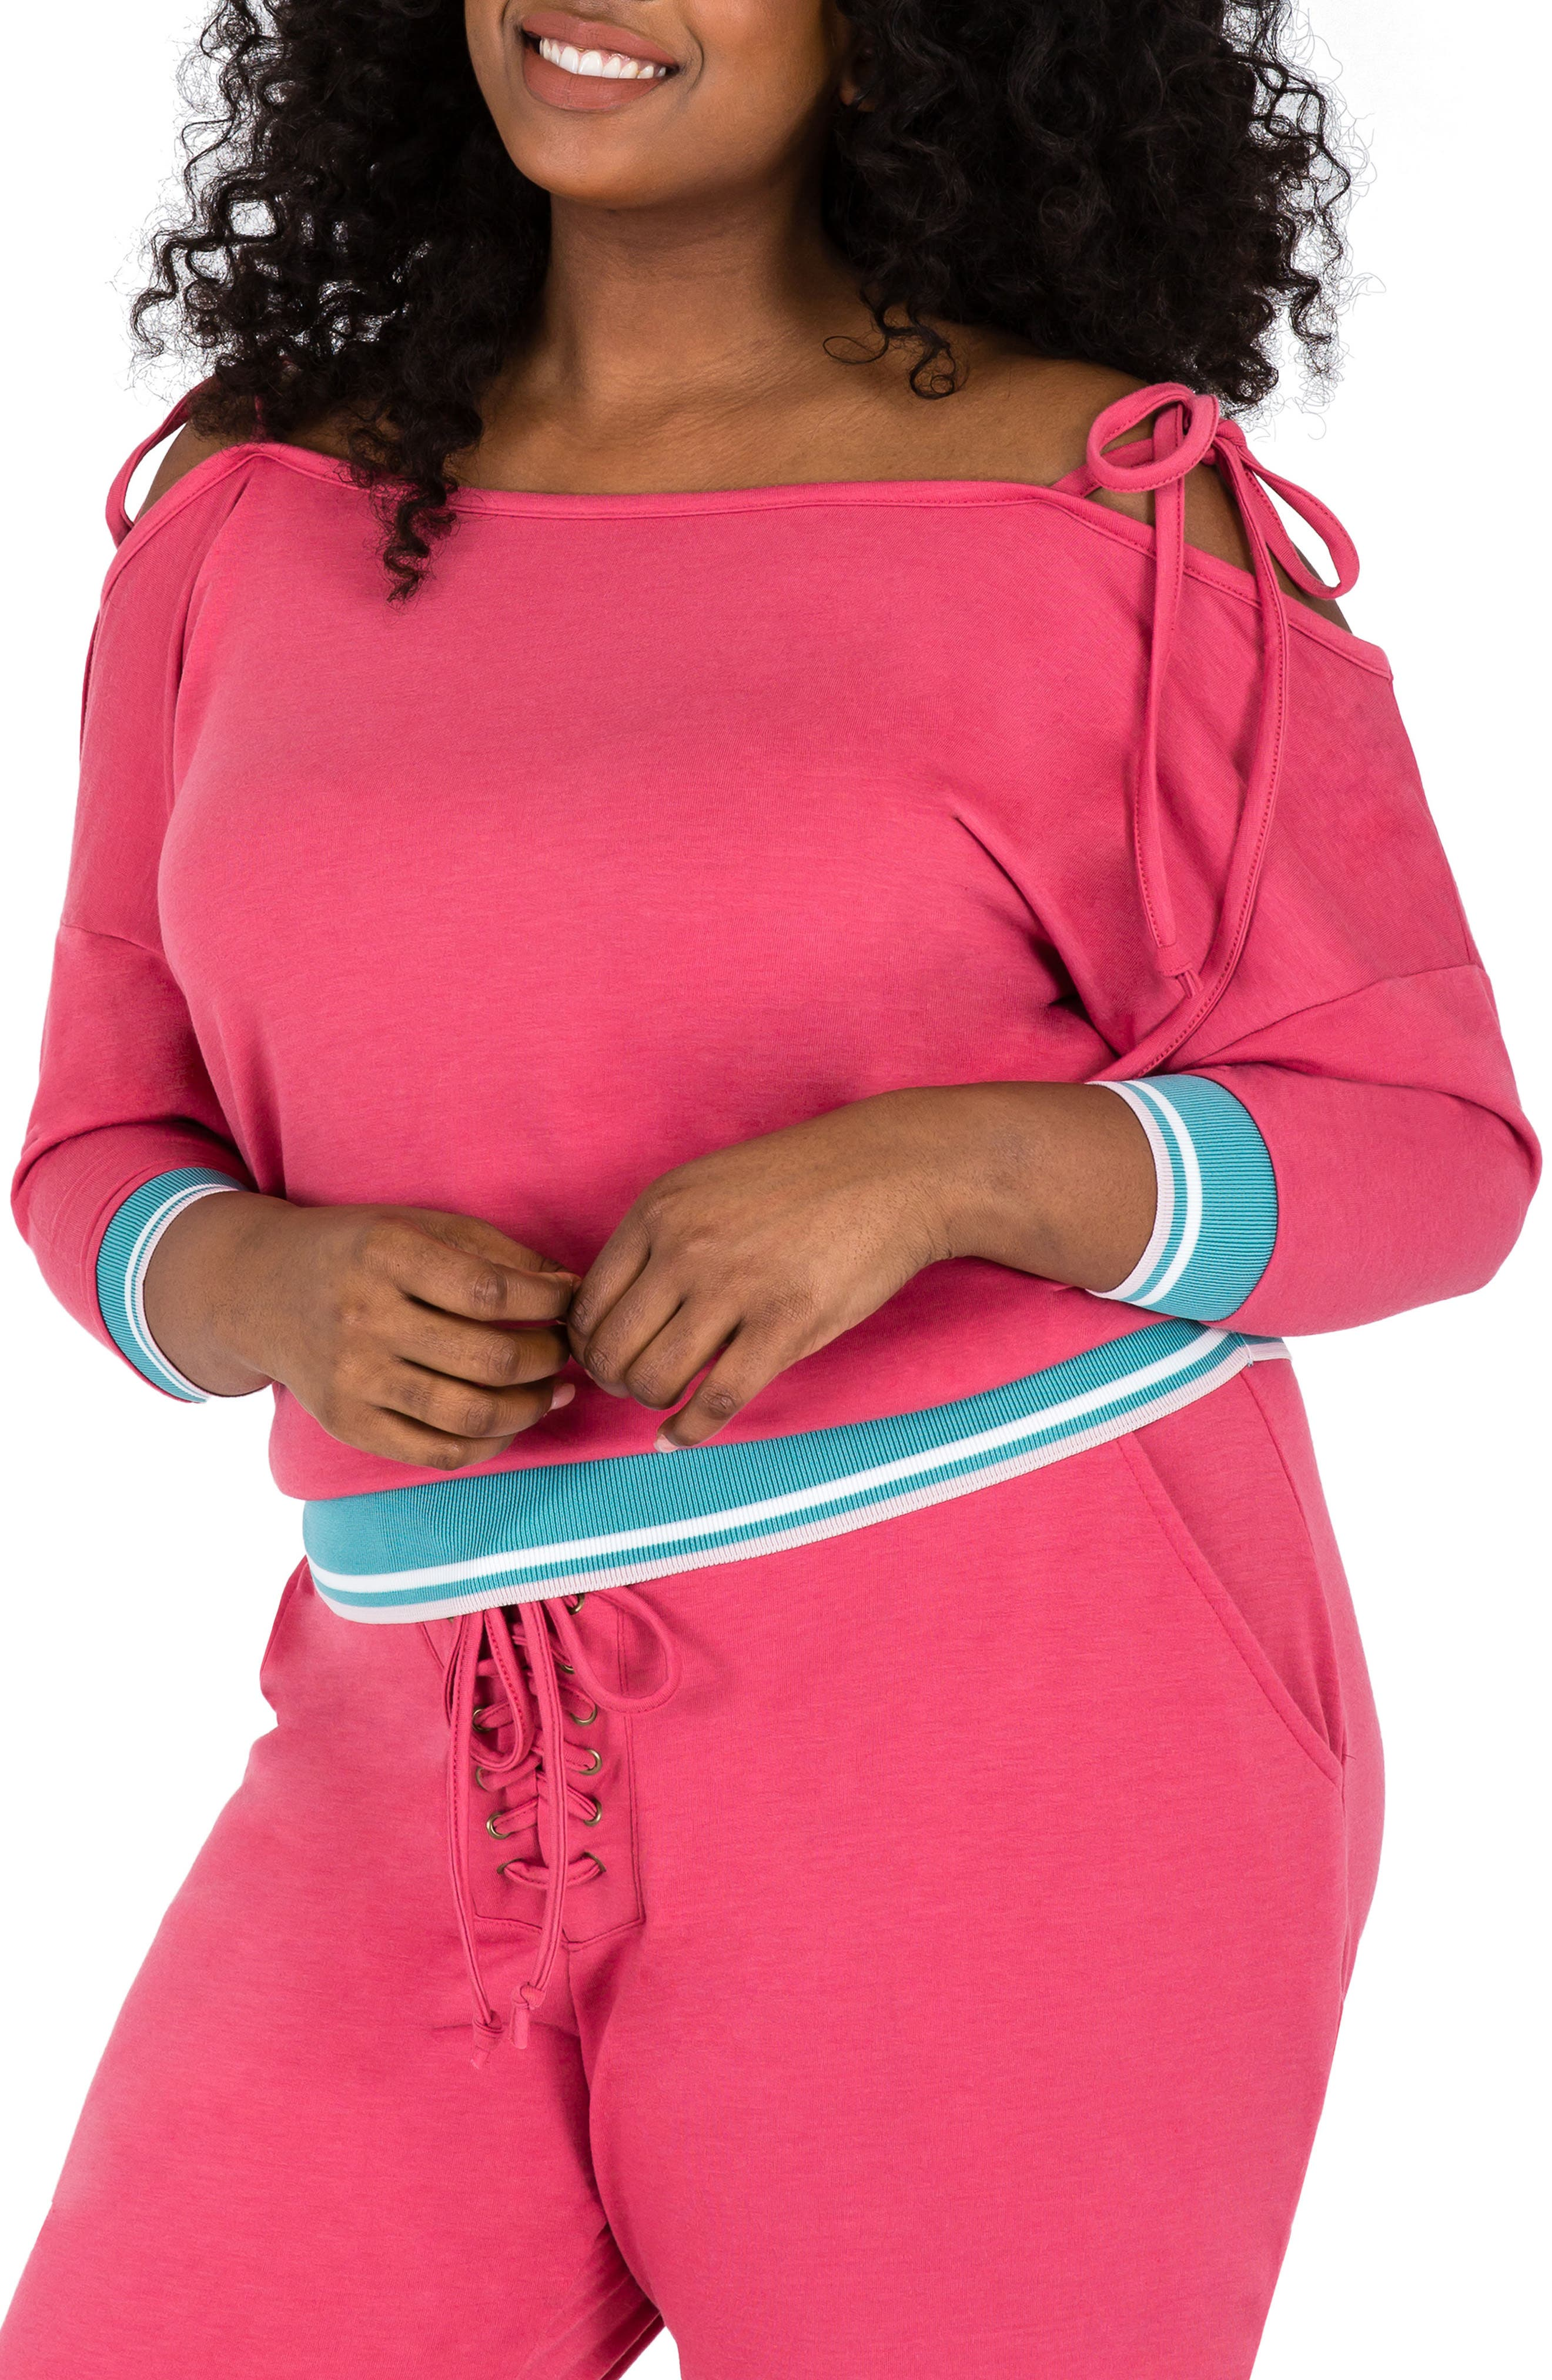 Plus Size Poetic Justice Janae Convertible Knit Top, Pink